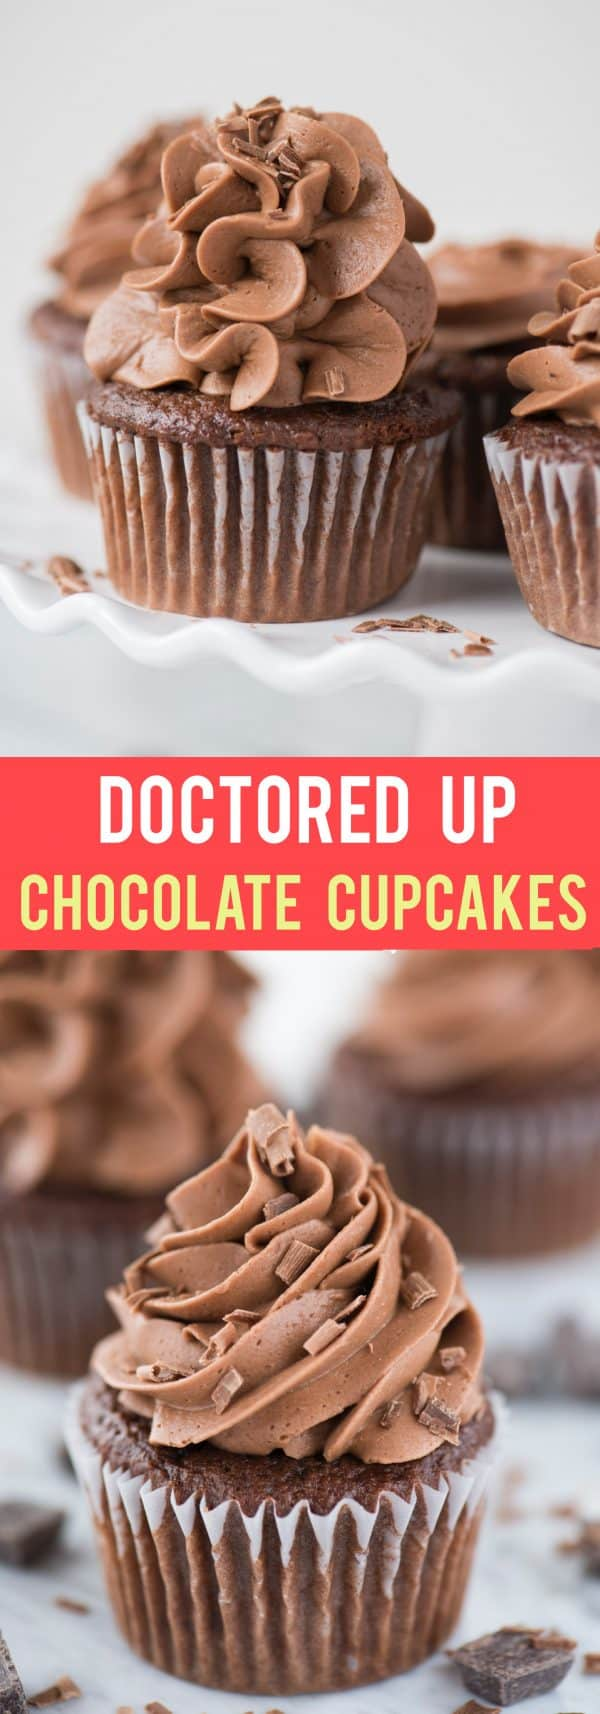 doctored up chocolate cupcakes with chocolate frosting on white background